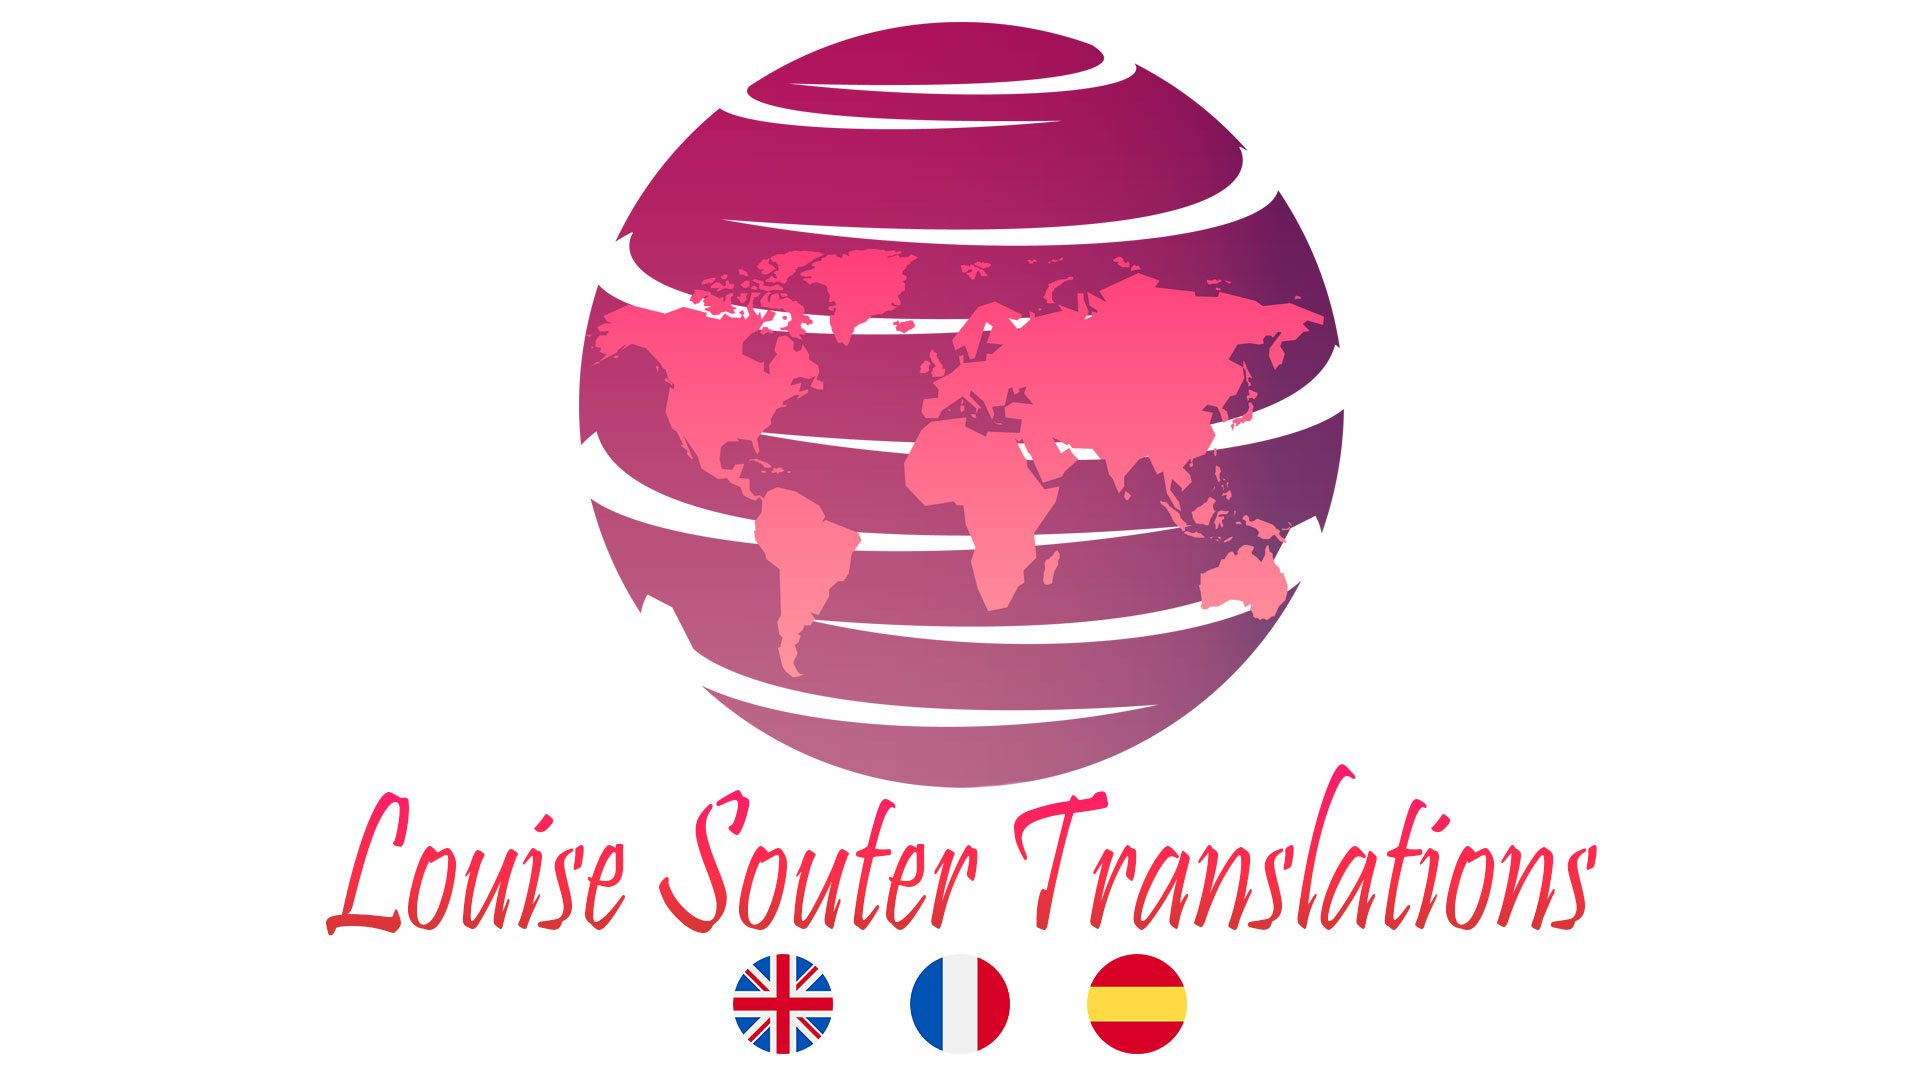 Louise Souter Translations